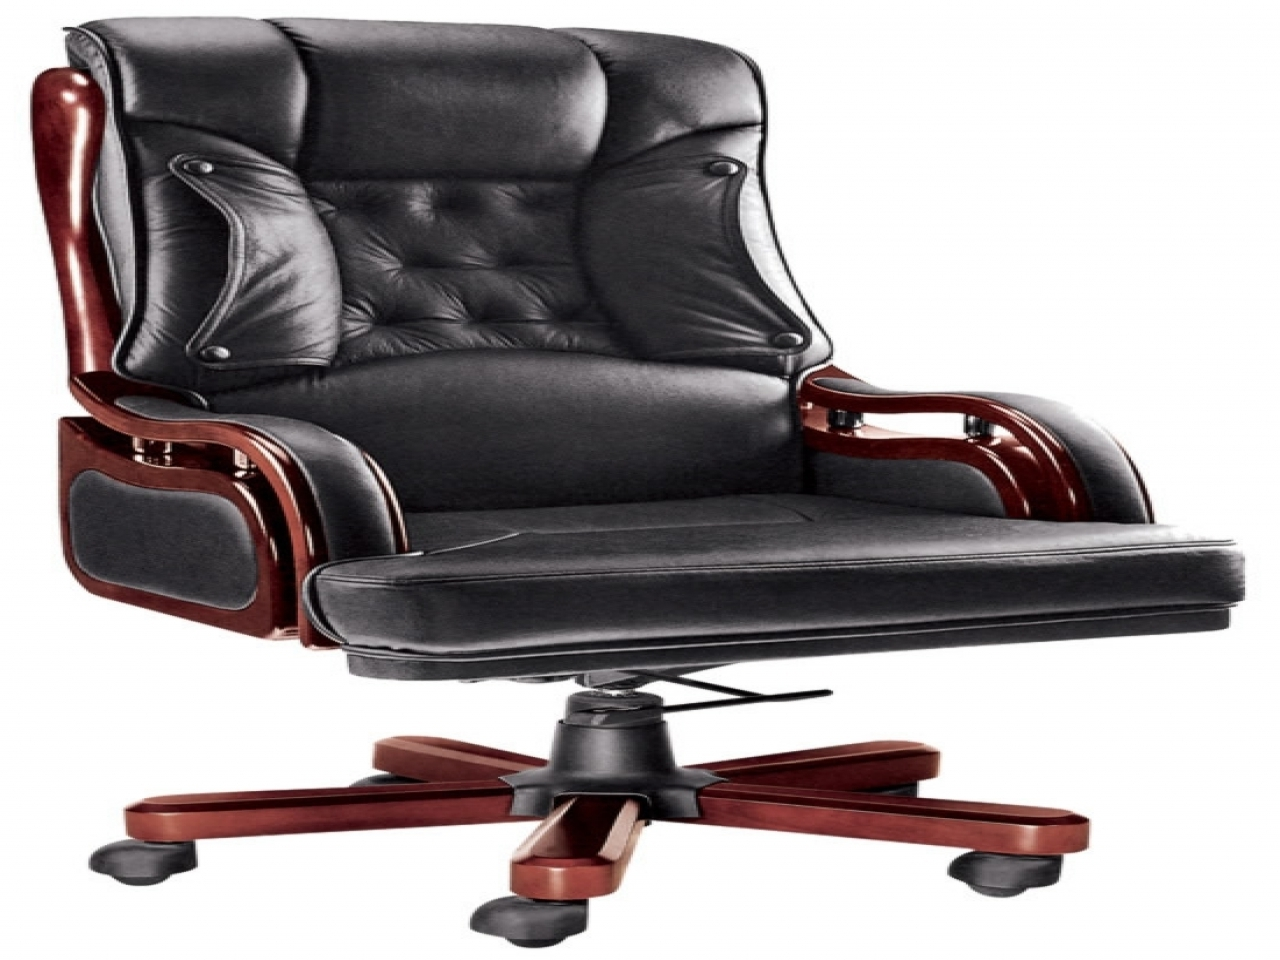 2019 Modern Leather Chairs, Executive Leather Office Chairs Large Regarding Large Executive Office Chairs (View 17 of 20)